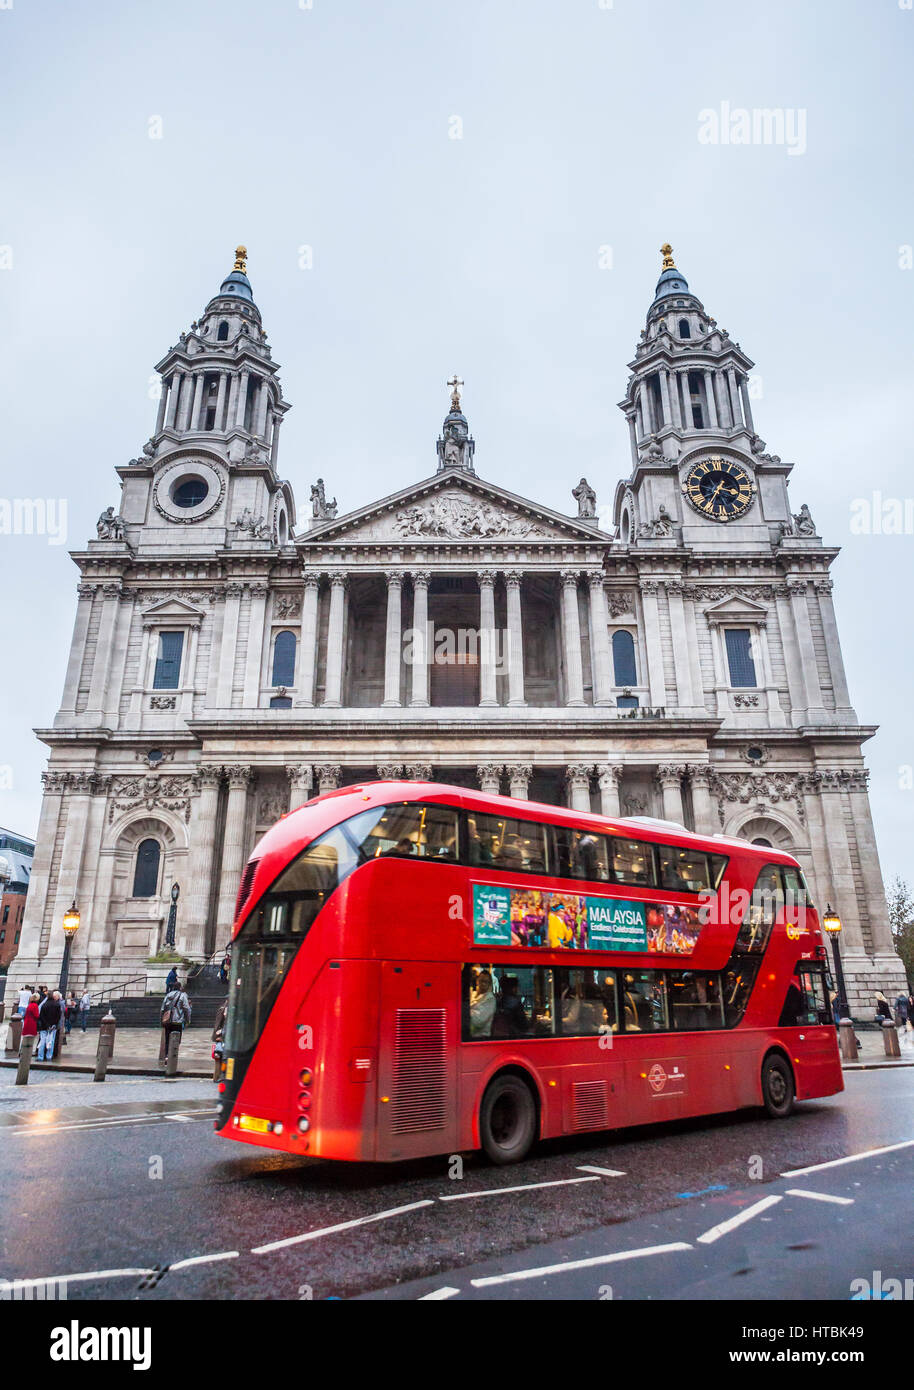 St Paul's Cathedral with double decker bus driving past. London, UK. - Stock Image